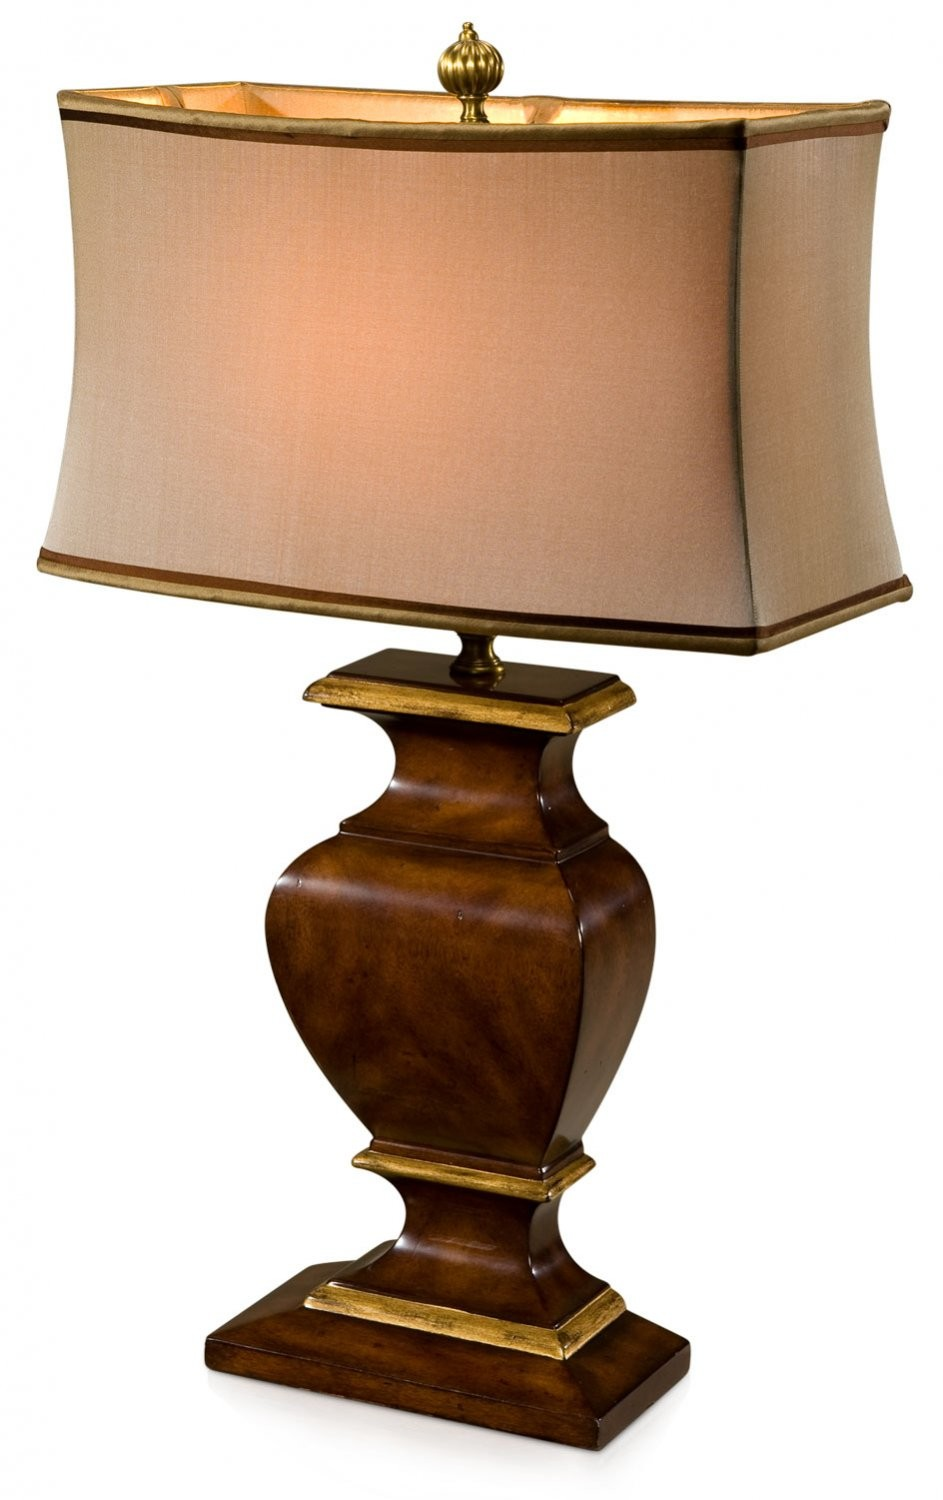 Mahogany table lamp table lamps from brights of nettlebed mahogany table lamp geotapseo Choice Image